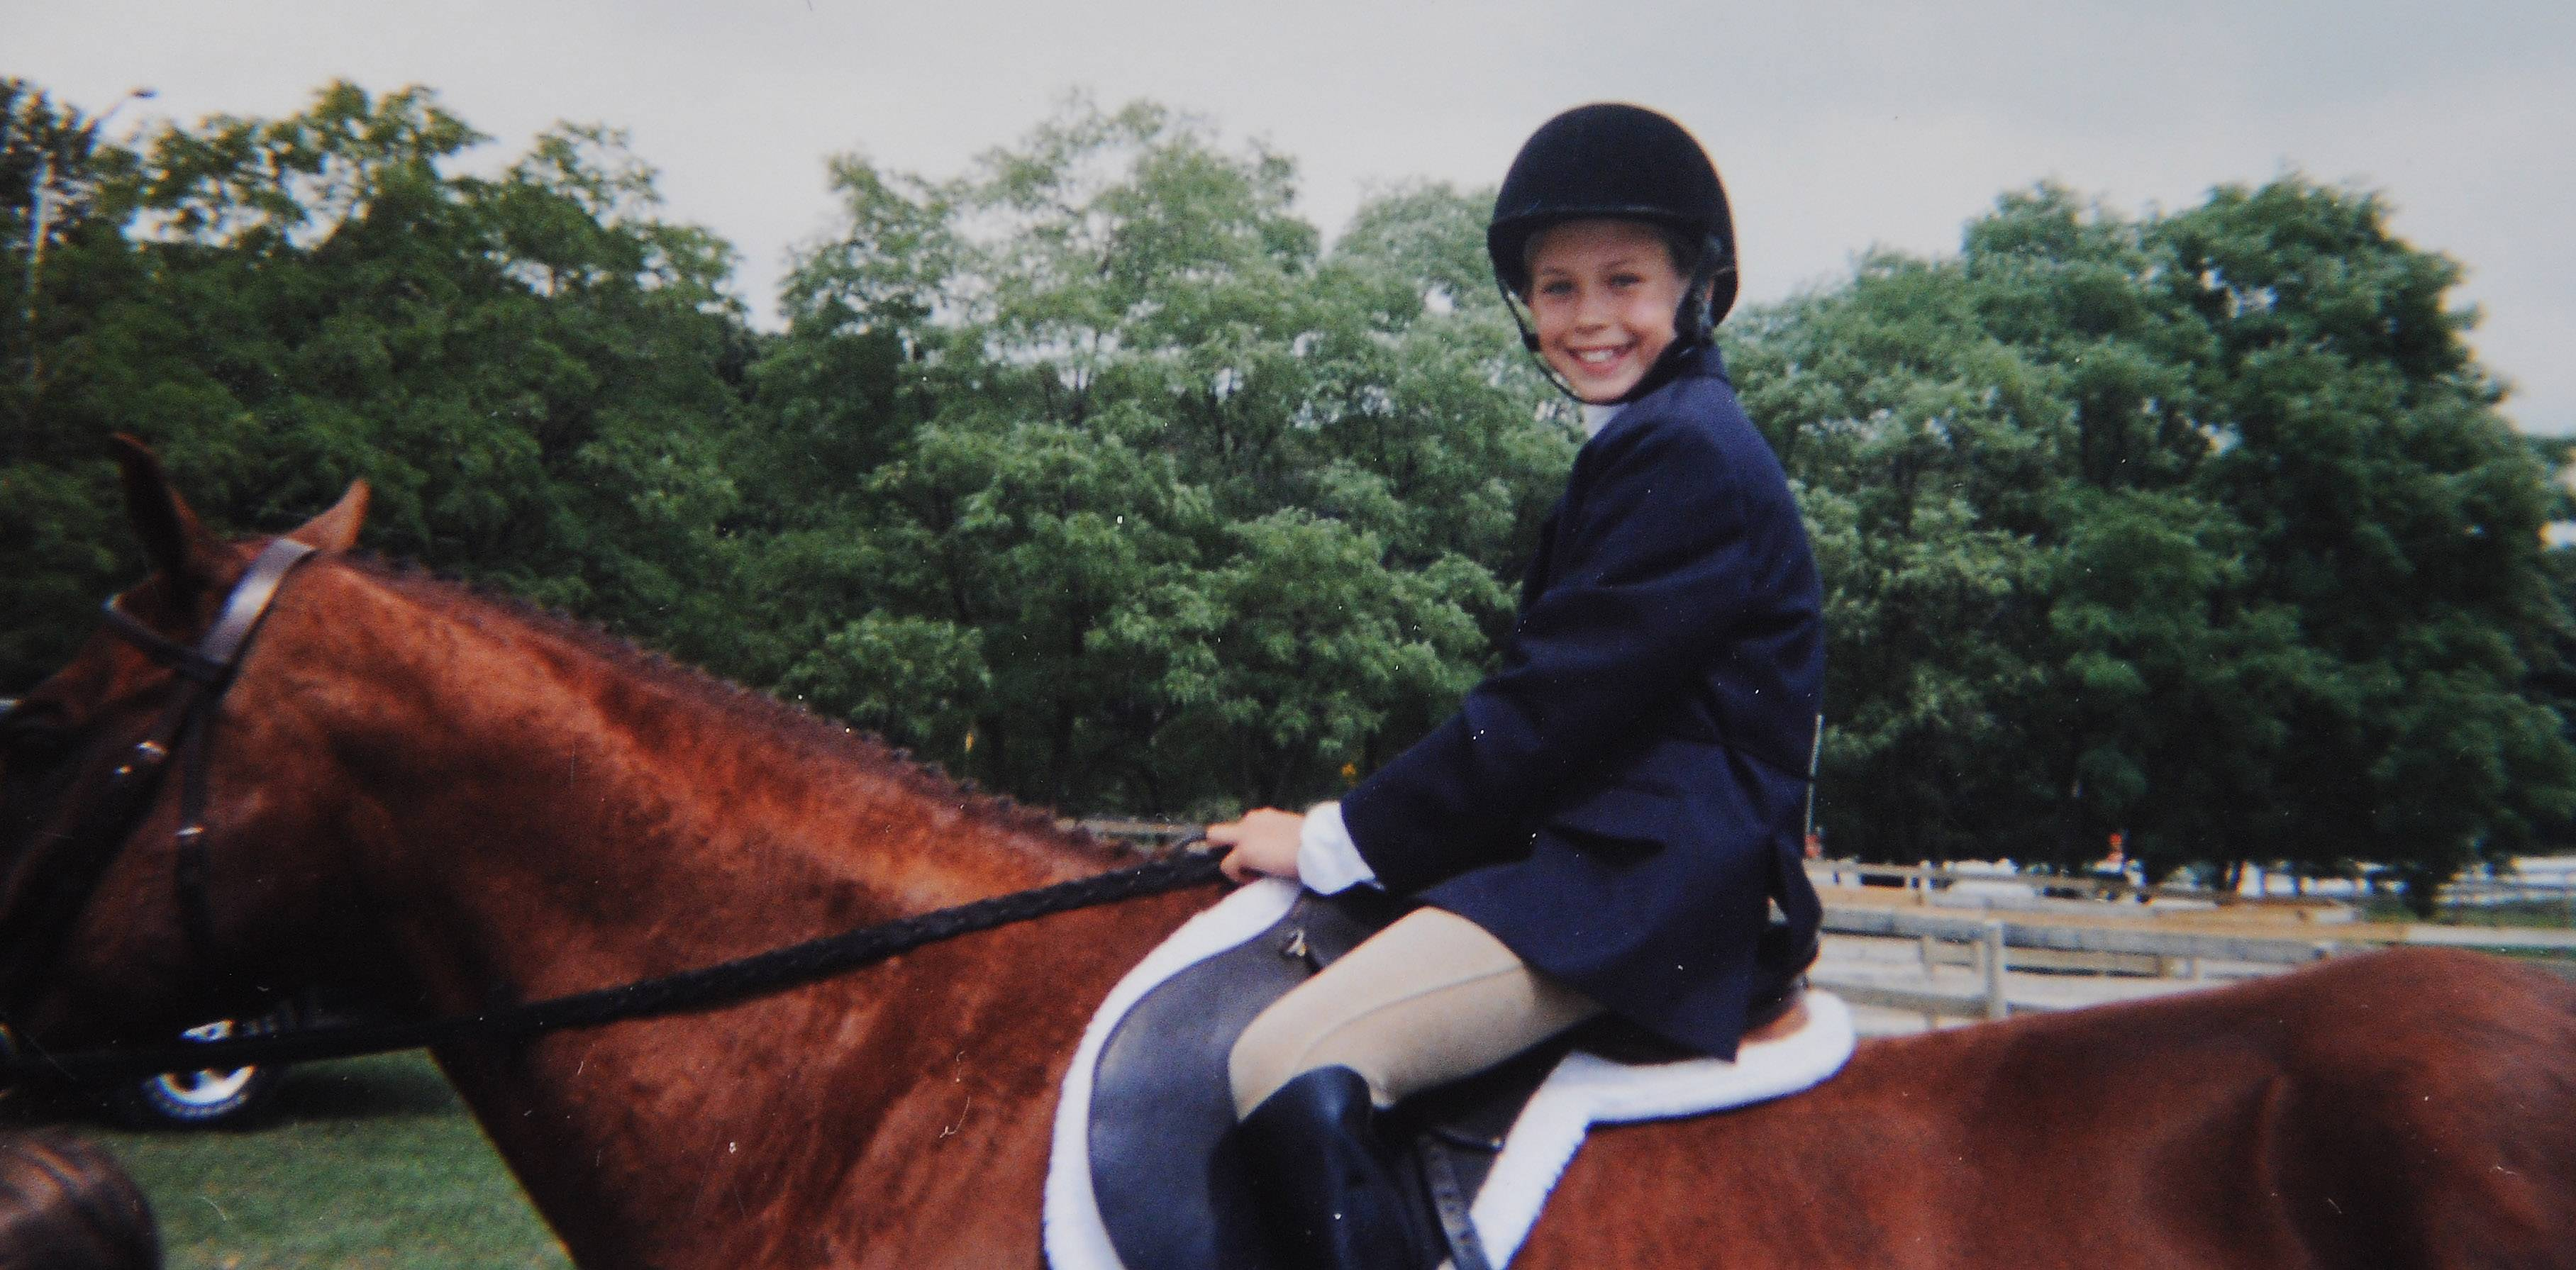 Daughter Alexis's passion was riding horses, says her father, Gary Fusz.